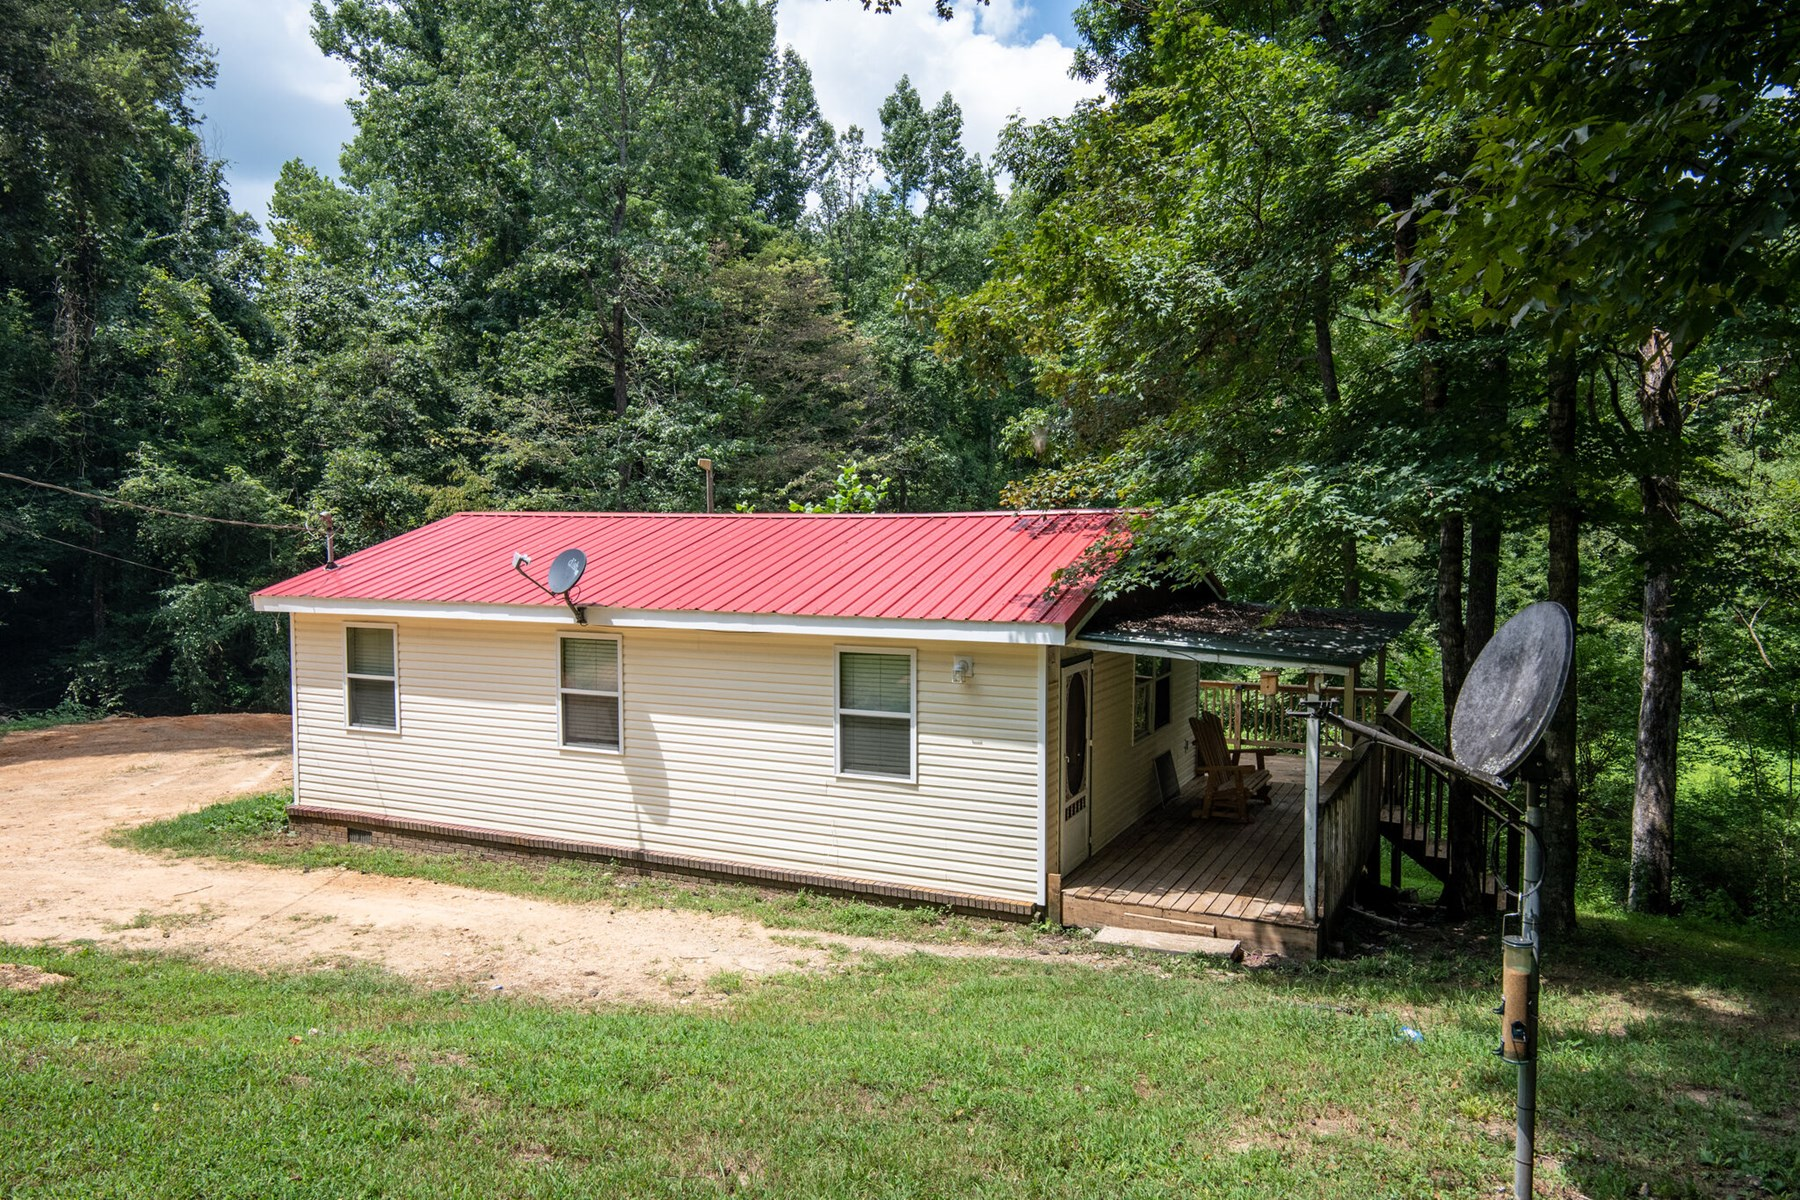 Recreational Property for Sale in Lawrenceburg, Tennessee.